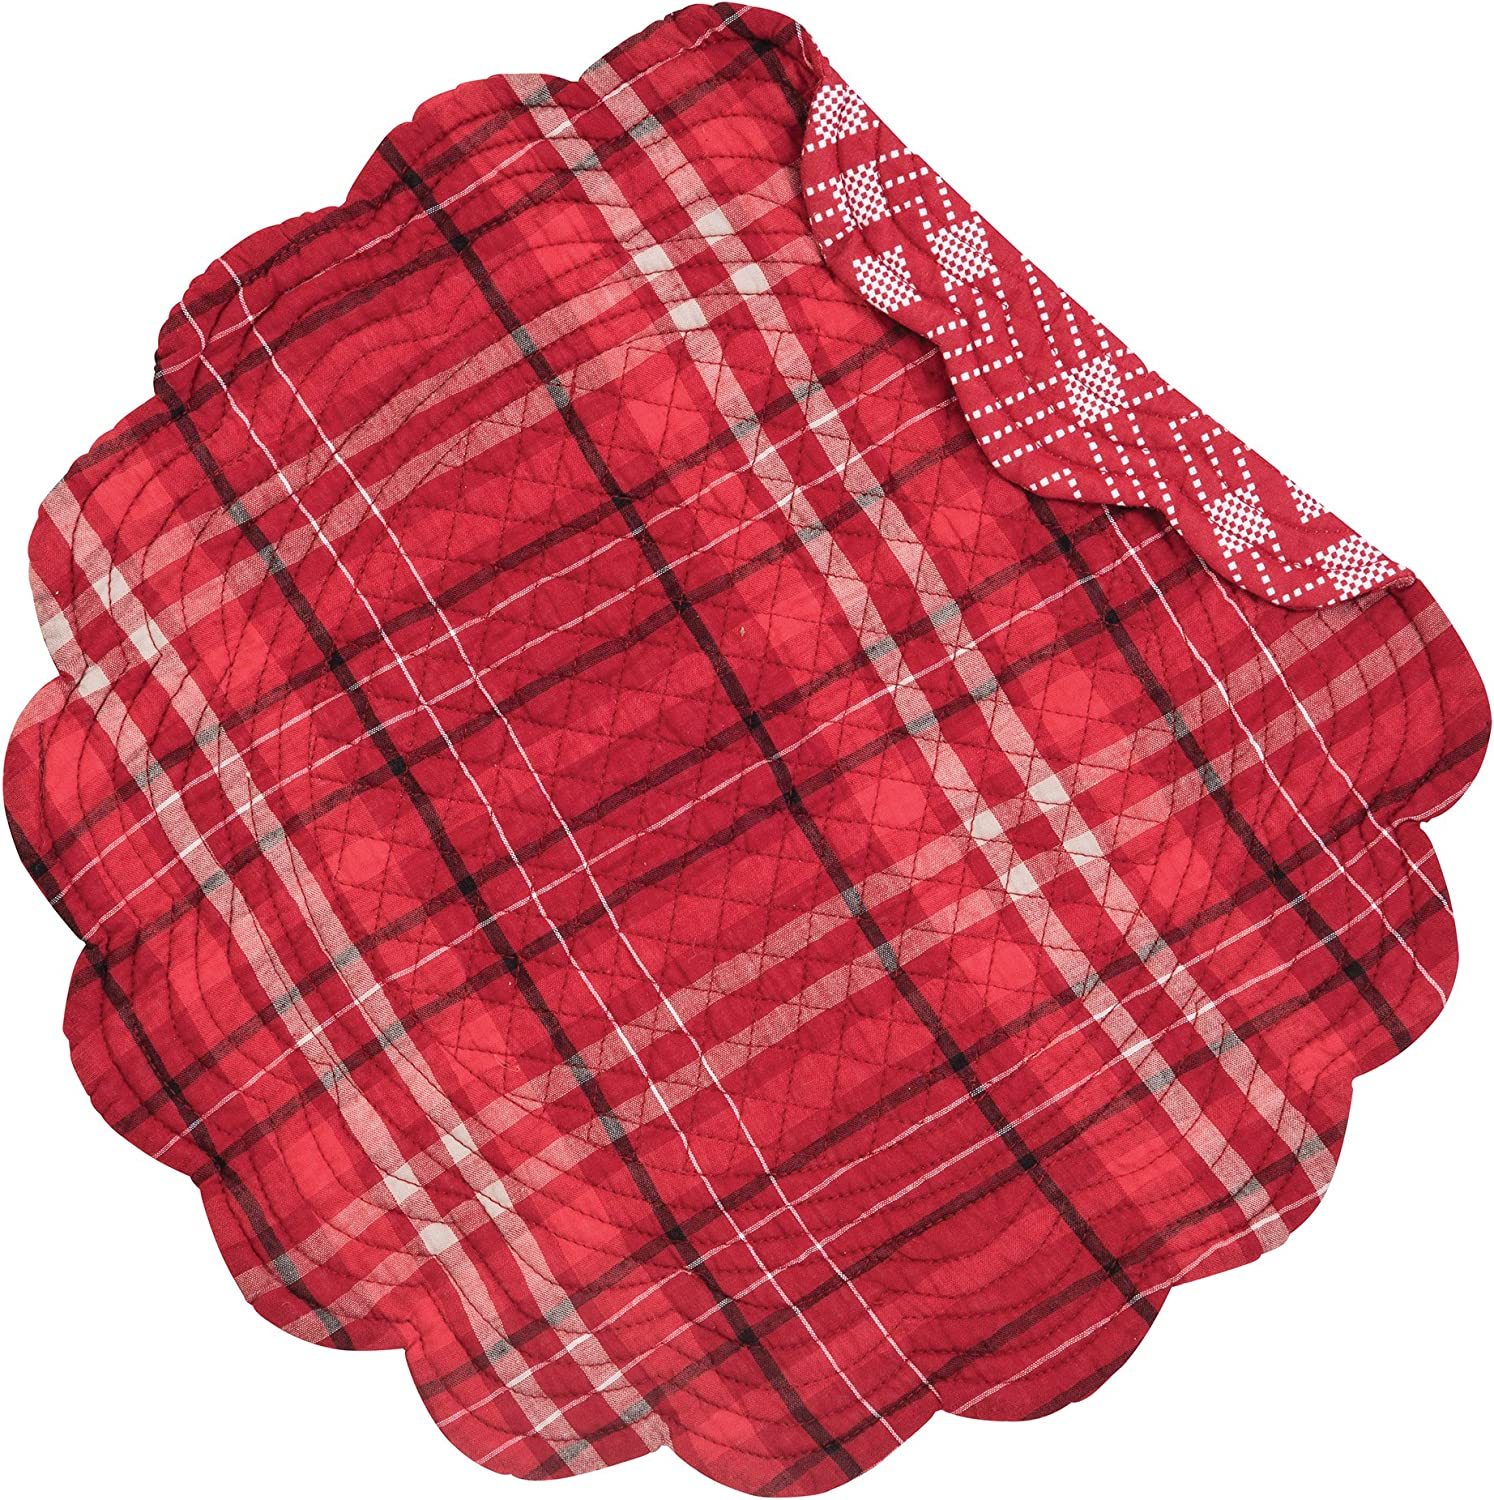 C&F Home Andrew Red Plaid Cabin Lodge Rustic Round Cotton Quilted Single Cotton Reversible Machine Washable Placemat Round Placemat